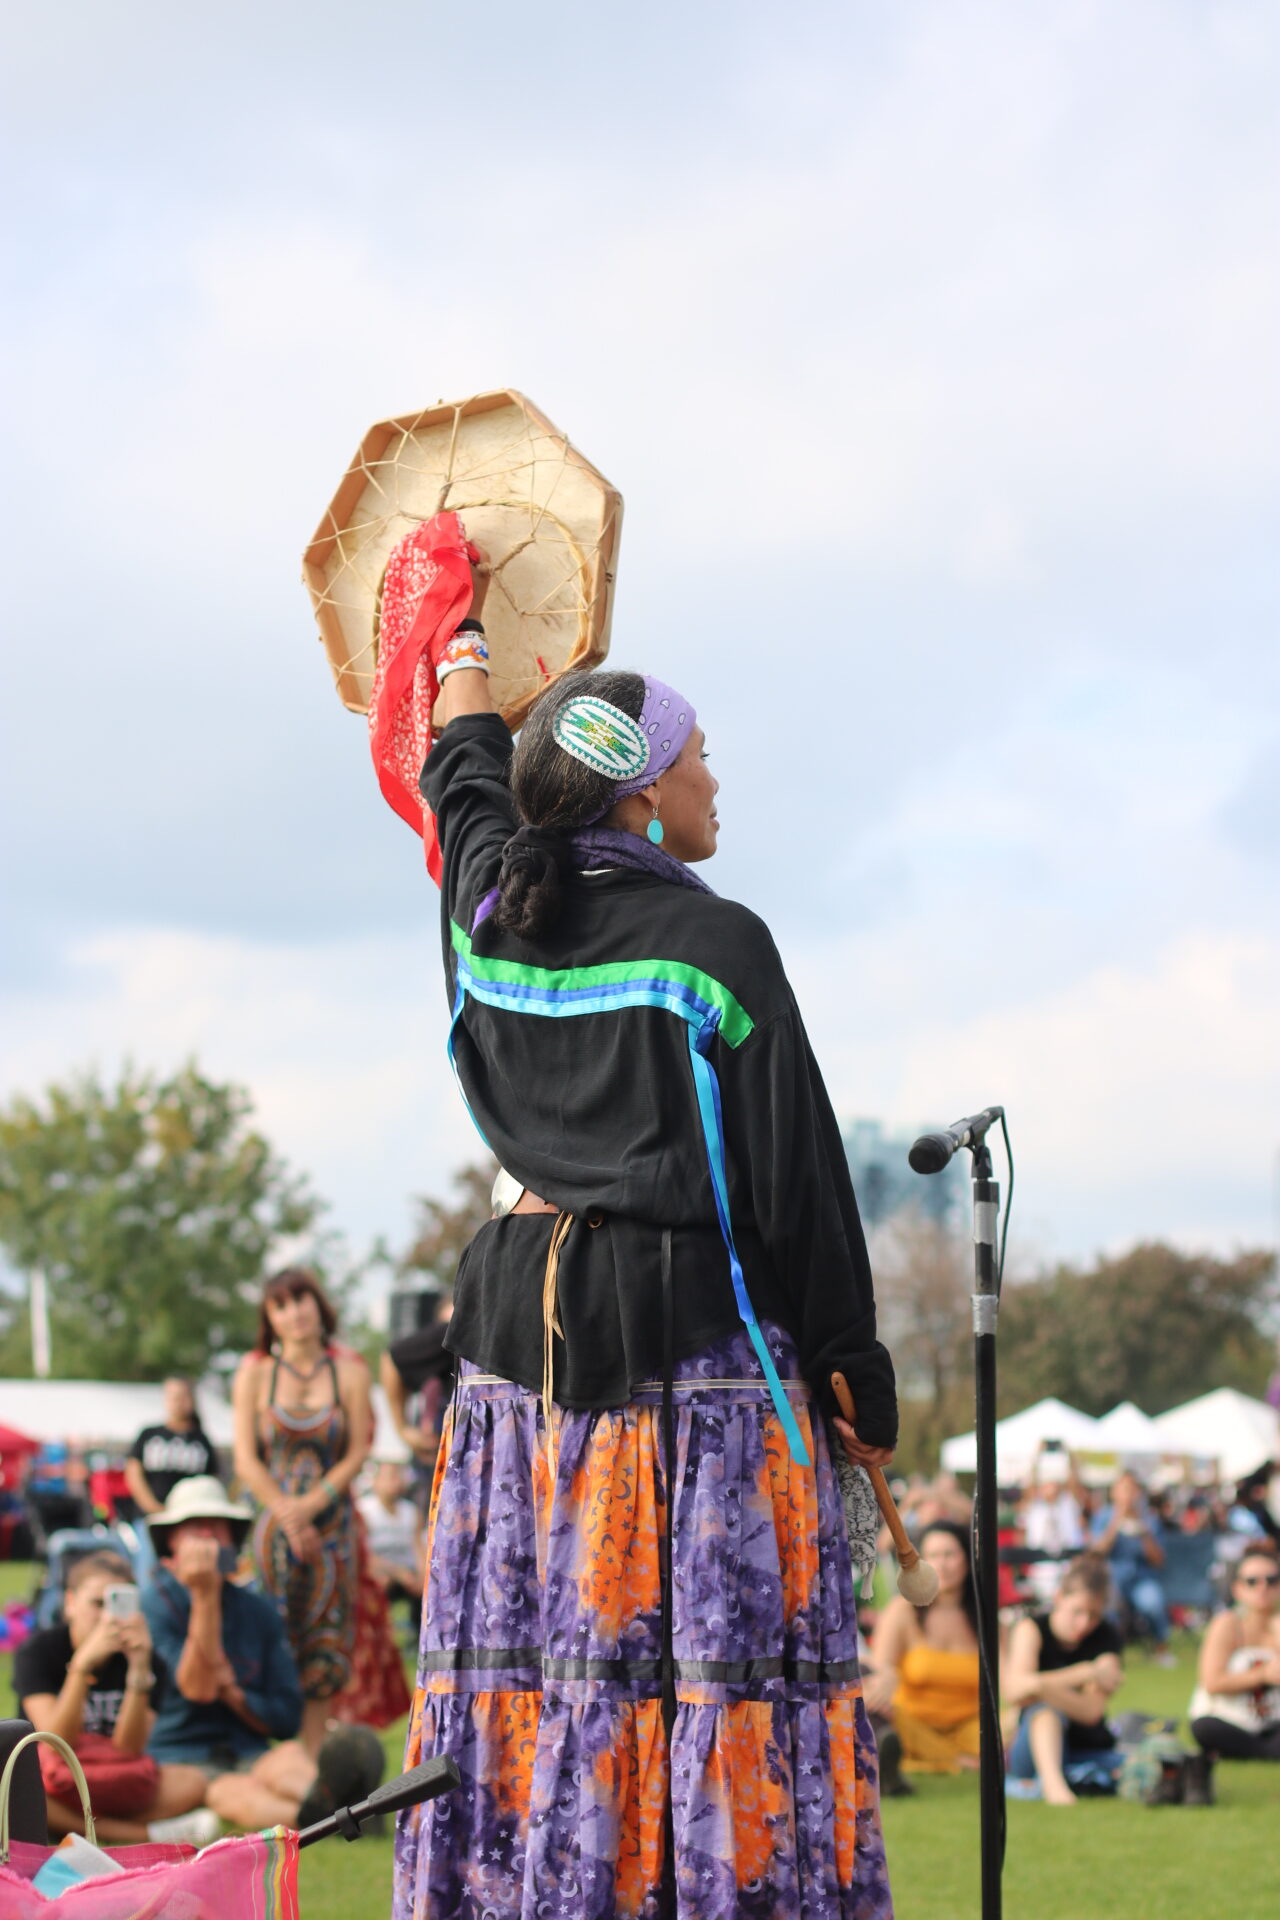 """Indigenous Peoples' Day in New York on Randall's Island is a place for native people to share their chants, songs, and dances, as well as amplify Indigenous stories, movements, and experiences. This event has continued to be held and organized by the Redhawk Native American Arts Council and Cliff Matias since the first event in 2015 when 6000 Indigenous peoples and their supporters gathered on Randall's Island to celebrate the 523 year survival of First Nations cultures and traditions. They created this event to protest """"Columbus Day"""" and show that Indigenous peoples predated Columbus' arrival and that their descendants have not forgotten their origins. For those people who were colonized or subjugated with violence and grief due to the arrival of foreigners, this day evokes the rethinking of Columbus Day by instead focusing on Indigenous peoples and honoring their cultures and traditional practices. So much of history romanticizes western colonization, when it should instead highlight Indigenous stories and how their lives were permanently impacted by the arrival of foreigners. It is important to acknowledge and listen to these stories in order to understand how it is continuing to affect Indigenous people today."""